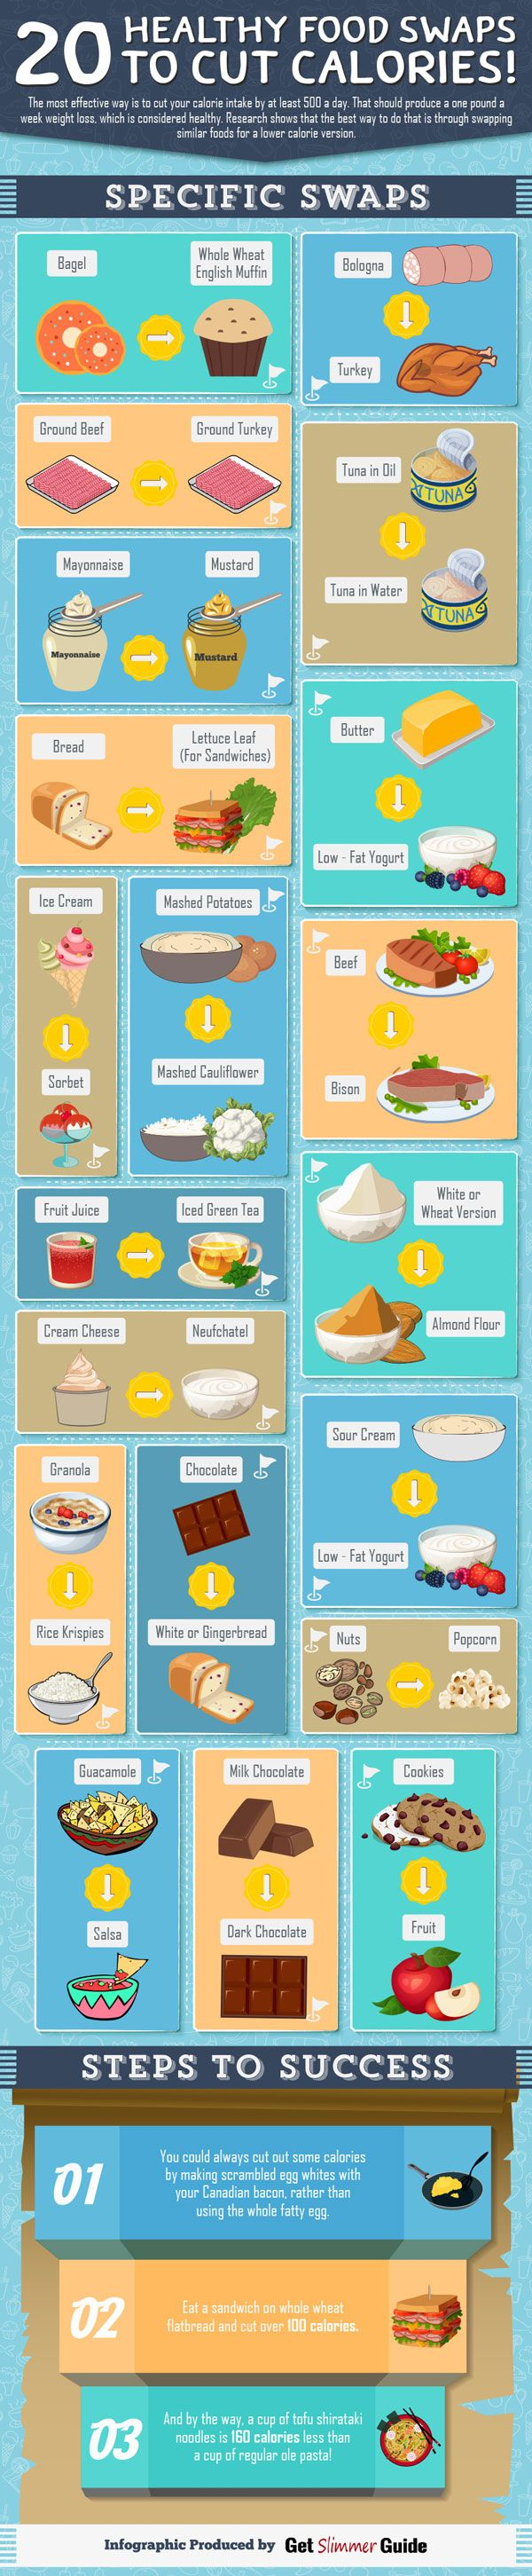 You can't expect to lose weight and keep it off without a strict diet. You can always cut calories by cutting out problematic foods. This infographic from Get Slimmer Guide covers 20 healthy food swaps to cut calories: